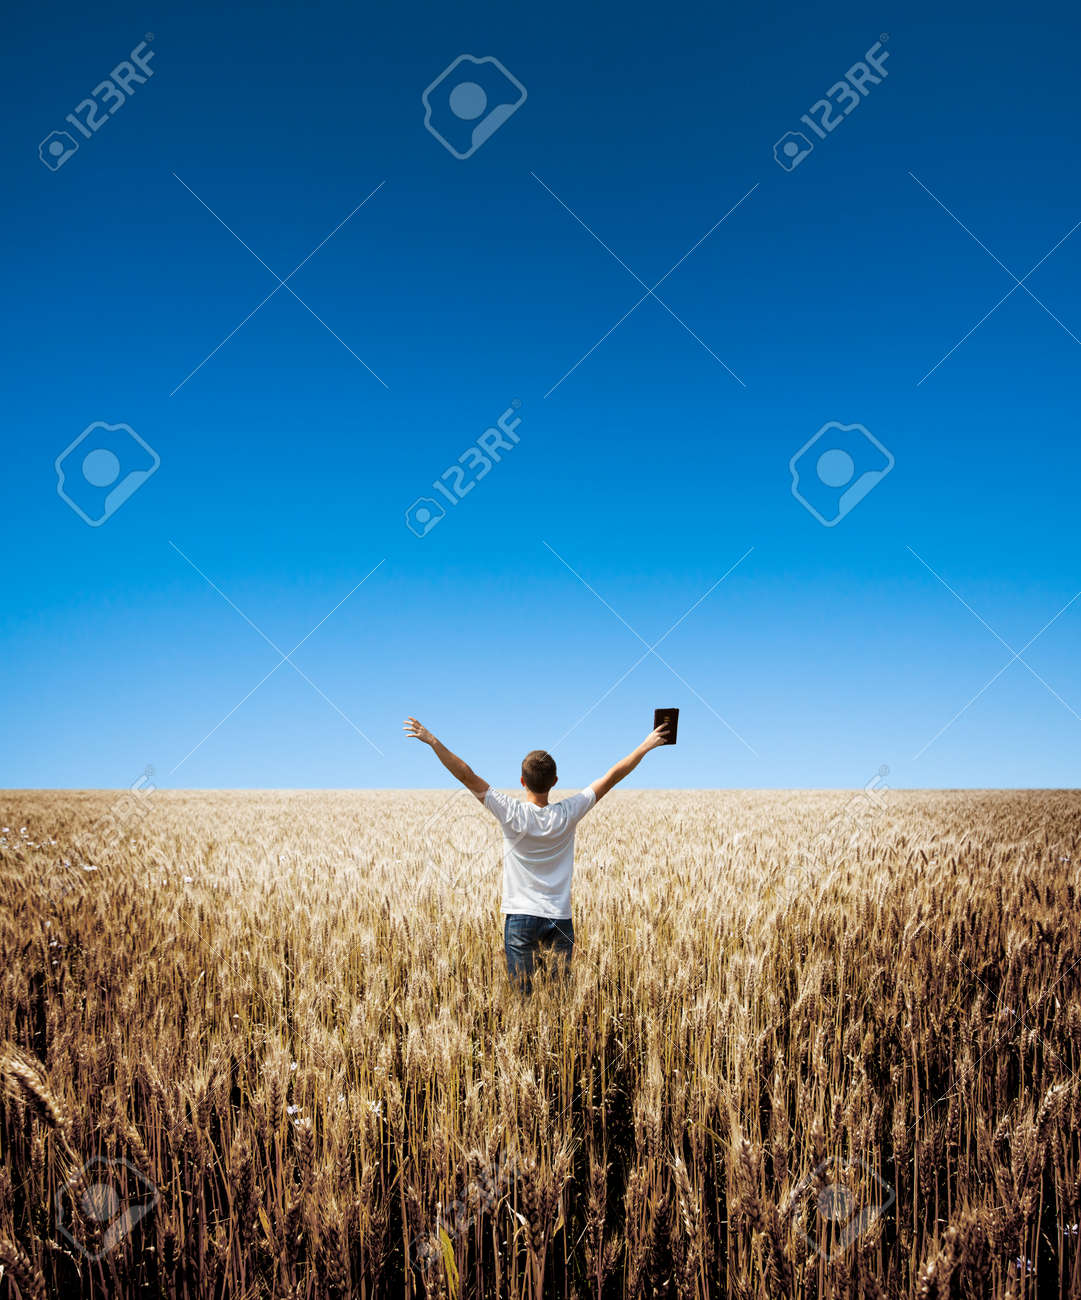 man holding up Bible in a wheat field - 41413747